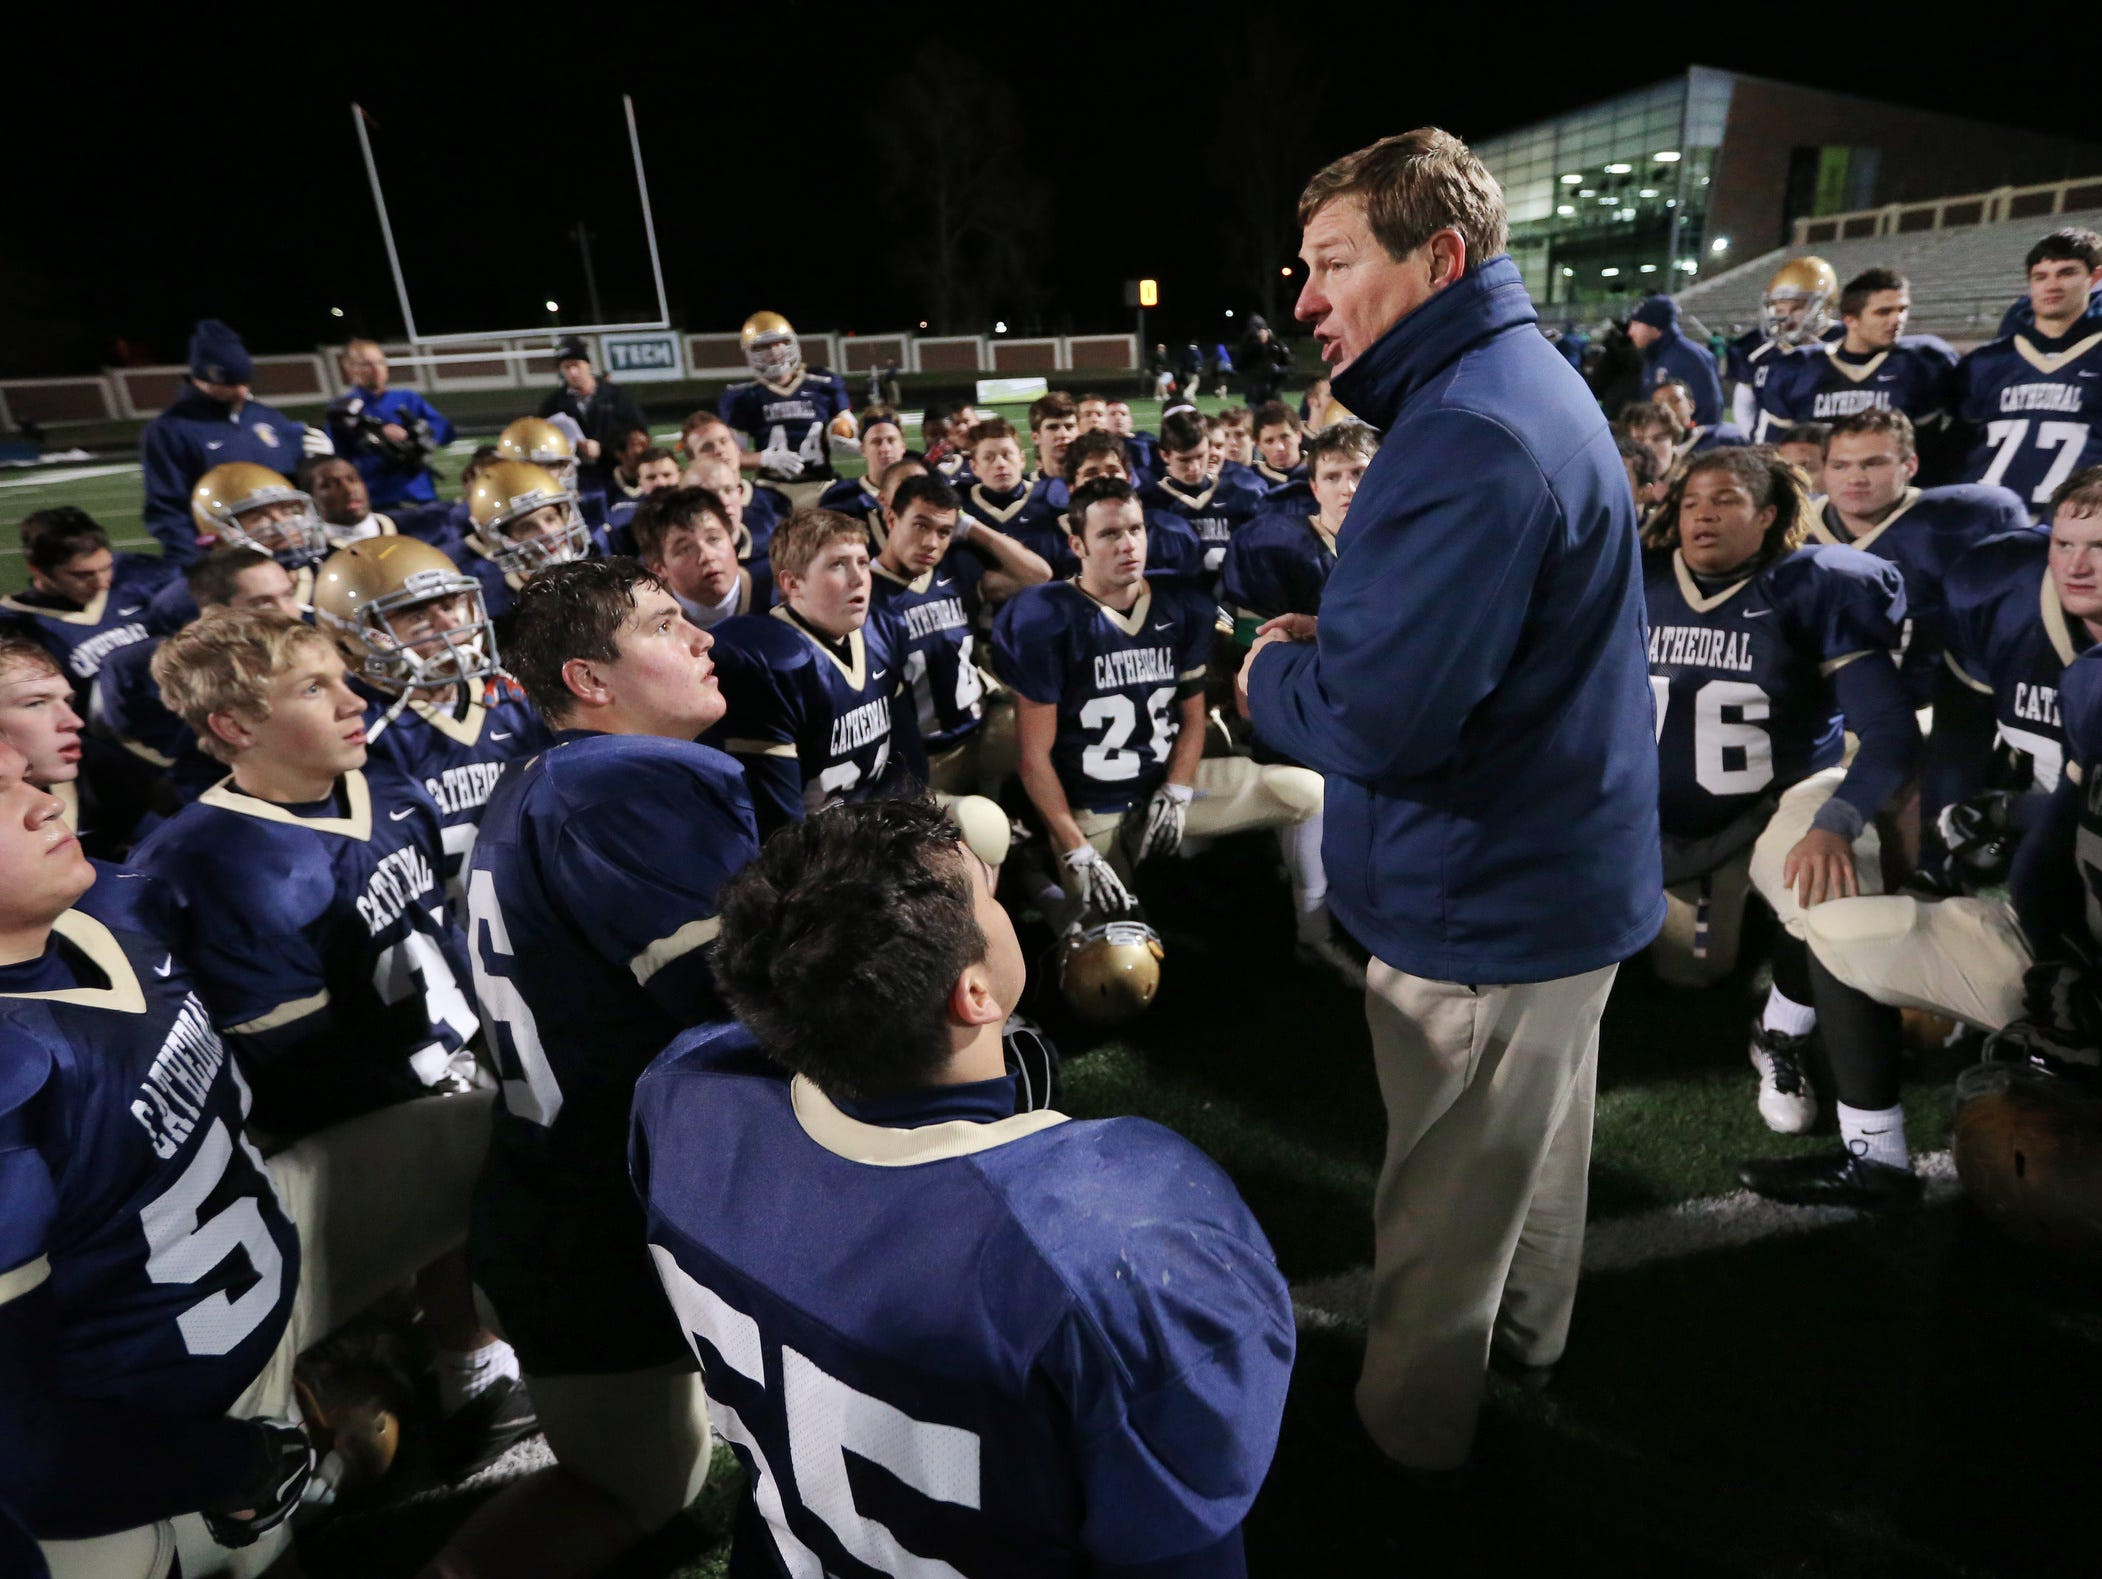 Cathedral head coach Rick Streiff congratulates his players after their IHSAA Semi state football win over Terre Haute North on Nov. 22, 2013 held at Arsenal Tech High School.